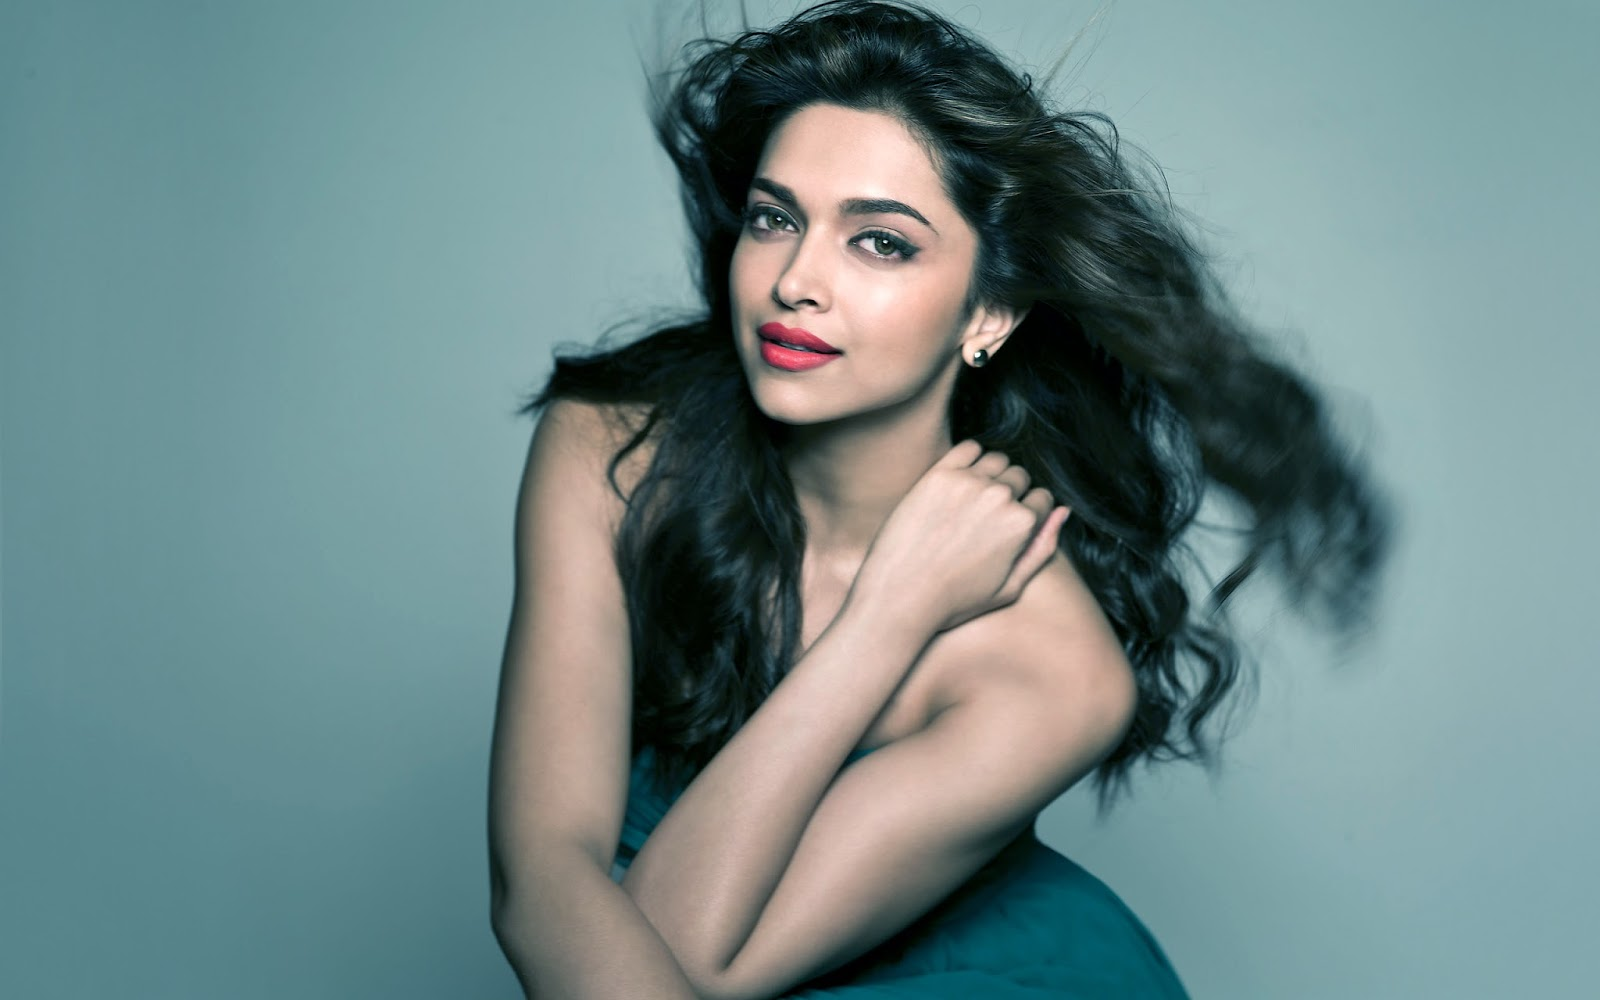 deepika padukone bollywood actress new hd wallpaper 1080p | high